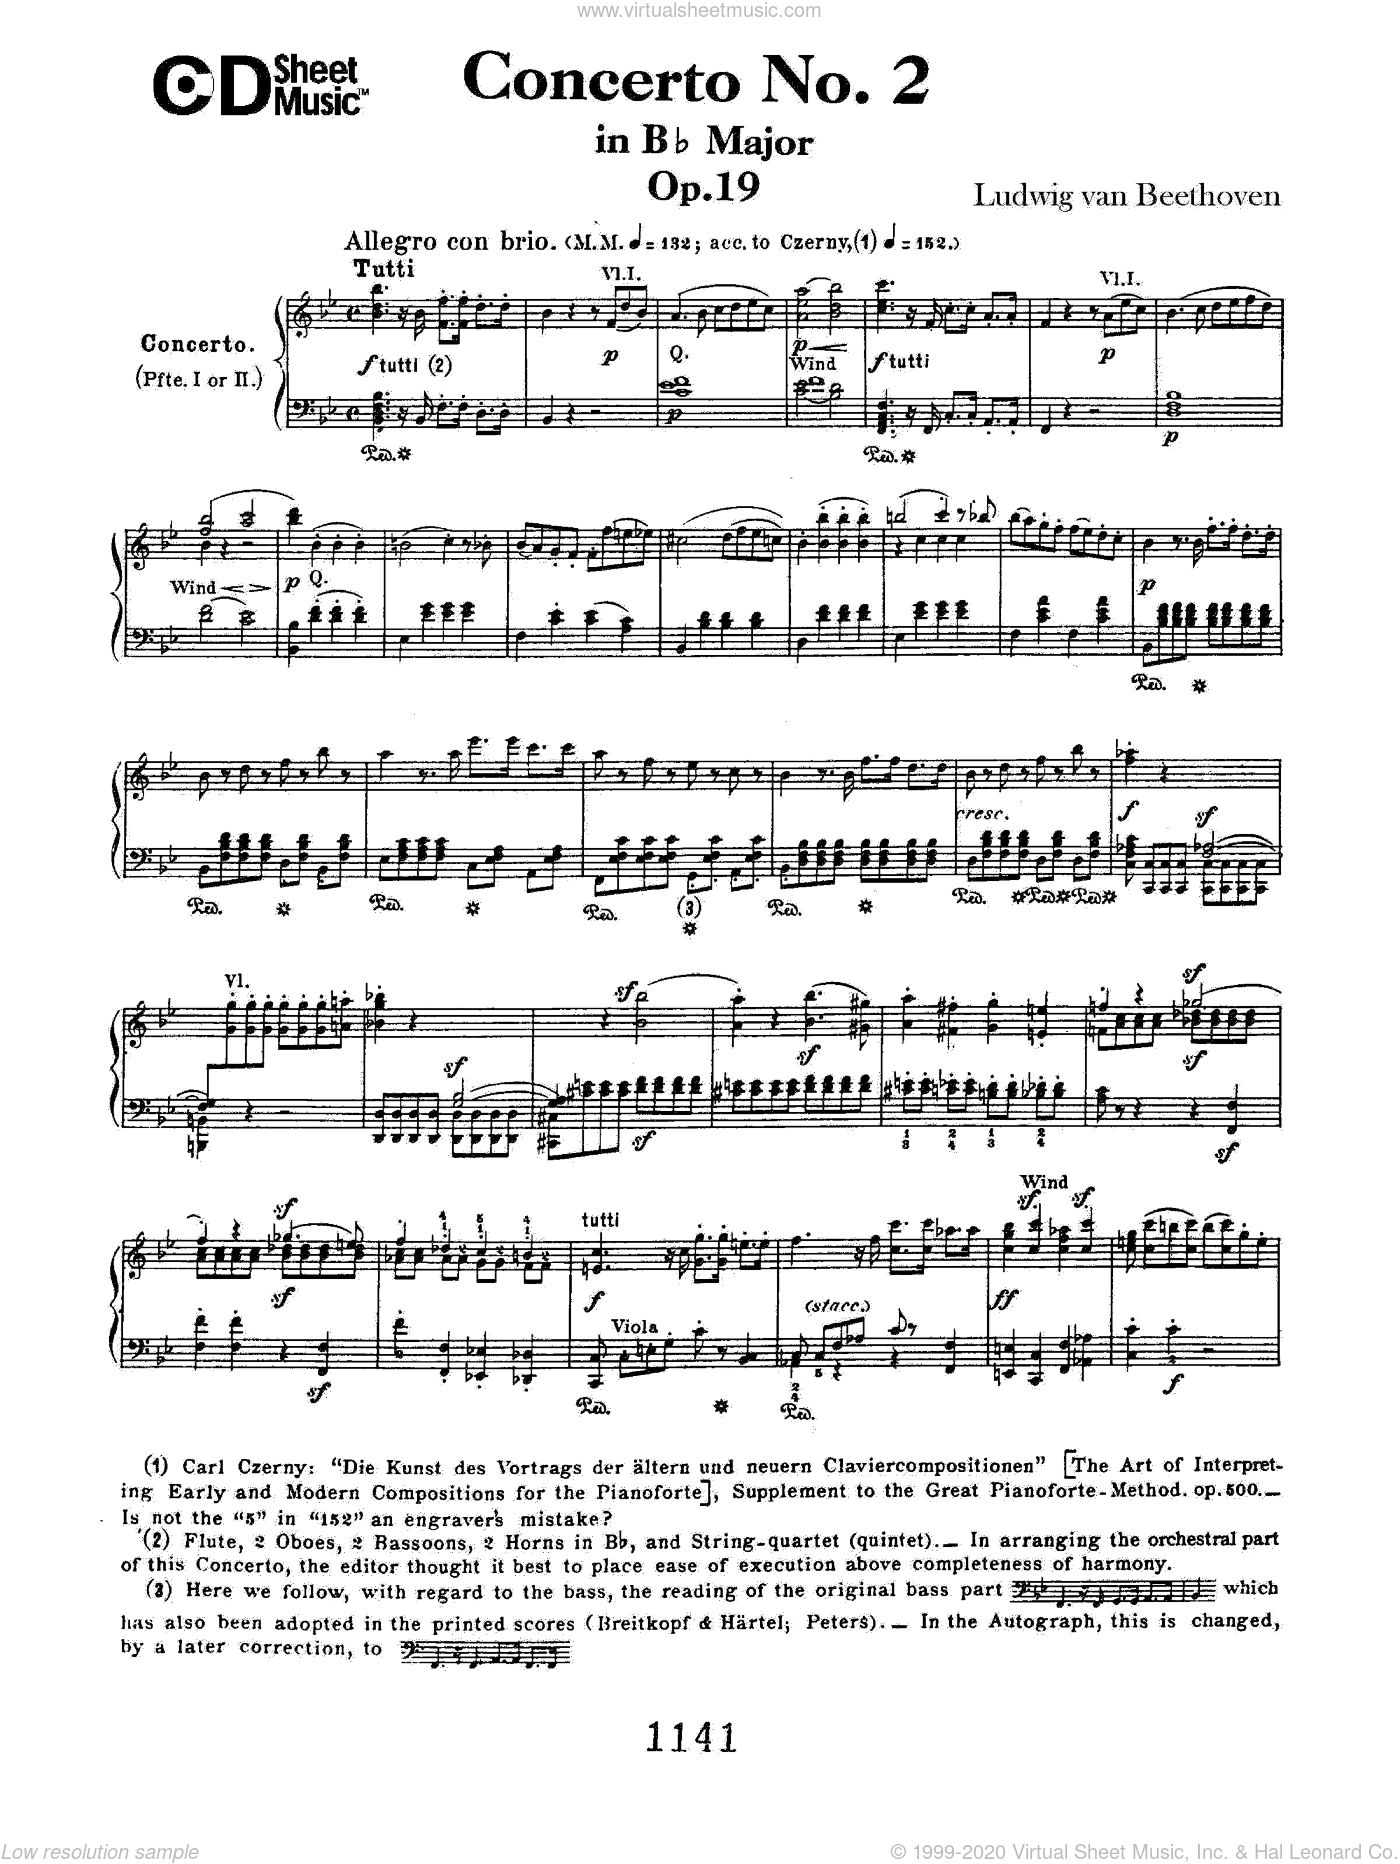 Concerto No. 2 In B-flat Major, Op. 19 sheet music for piano solo by Ludwig van Beethoven